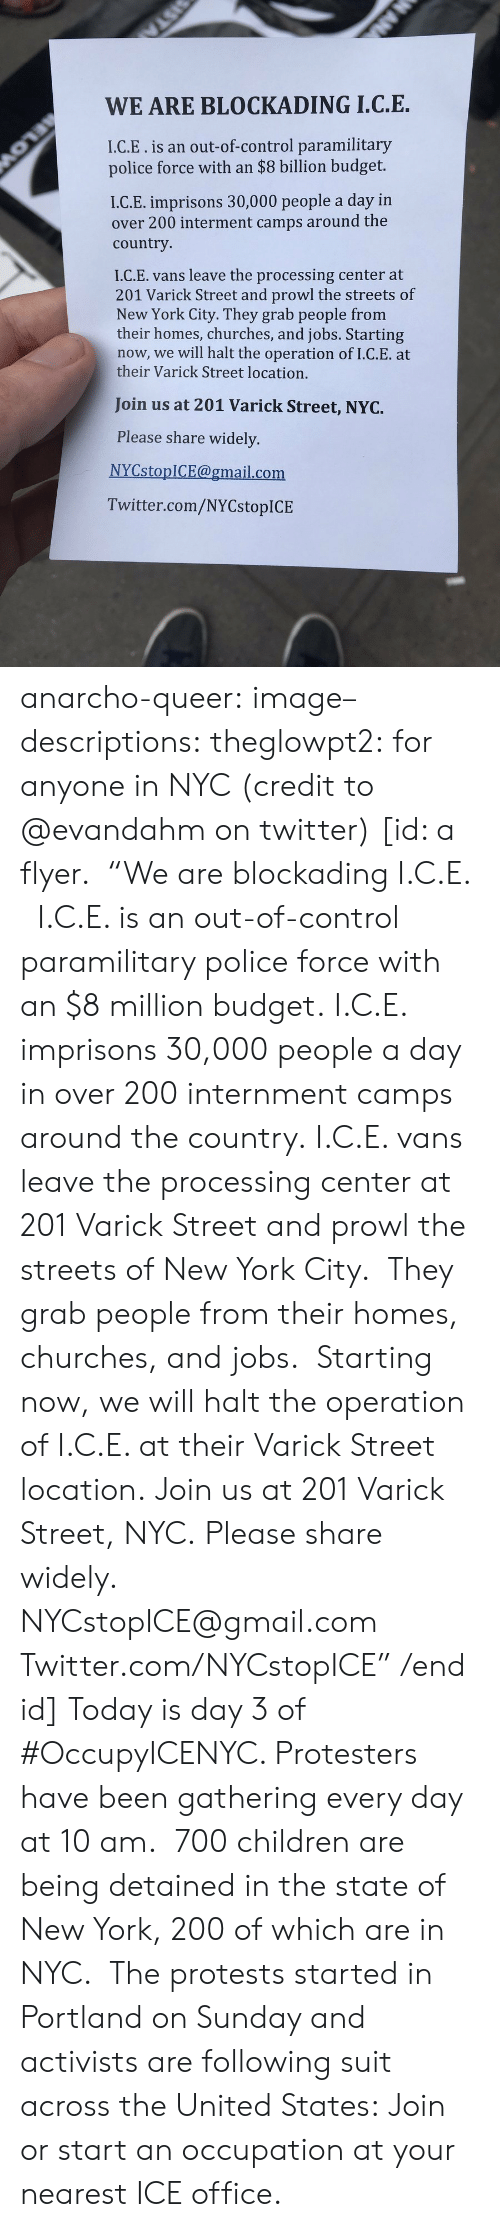 "York City: WE ARE BLOCKADING I.C.E.  I.C.E.is an out-of-control paramilitary  police force with an $8 billion budget.  I.C.E. imprisons 30,000 people a day in  over 200 interment camps around the  country  I.C.E. vans leave the processing center at  201 Varick Street and prowl the streets of  New York City. They grab people from  their homes, churches, and jobs. Starting  now, we will halt the operation of I.C.E. at  their Varick Street location.  Join us at 201 Varick Street, NYC.  Please share widely.  NYCstopICE@gmail.com  Twitter.com/NYCstopICE anarcho-queer: image–descriptions:  theglowpt2: for anyone in NYC (credit to @evandahm on twitter) [id: a flyer.  ""We are blockading I.C.E.   I.C.E. is an out-of-control paramilitary police force with an $8 million budget. I.C.E. imprisons 30,000 people a day in over 200 internment camps around the country. I.C.E. vans leave the processing center at 201 Varick Street and prowl the streets of New York City.  They grab people from their homes, churches, and jobs.  Starting now, we will halt the operation of I.C.E. at their Varick Street location. Join us at 201 Varick Street, NYC. Please share widely. NYCstopICE@gmail.com Twitter.com/NYCstopICE"" /end id]  Today is day 3 of #OccupyICENYC. Protesters have been gathering every day at 10 am.  700 children are being detained in the state of New York, 200 of which are in NYC.  The protests started in Portland on Sunday and activists are following suit across the United States: Join or start an occupation at your nearest ICE office."